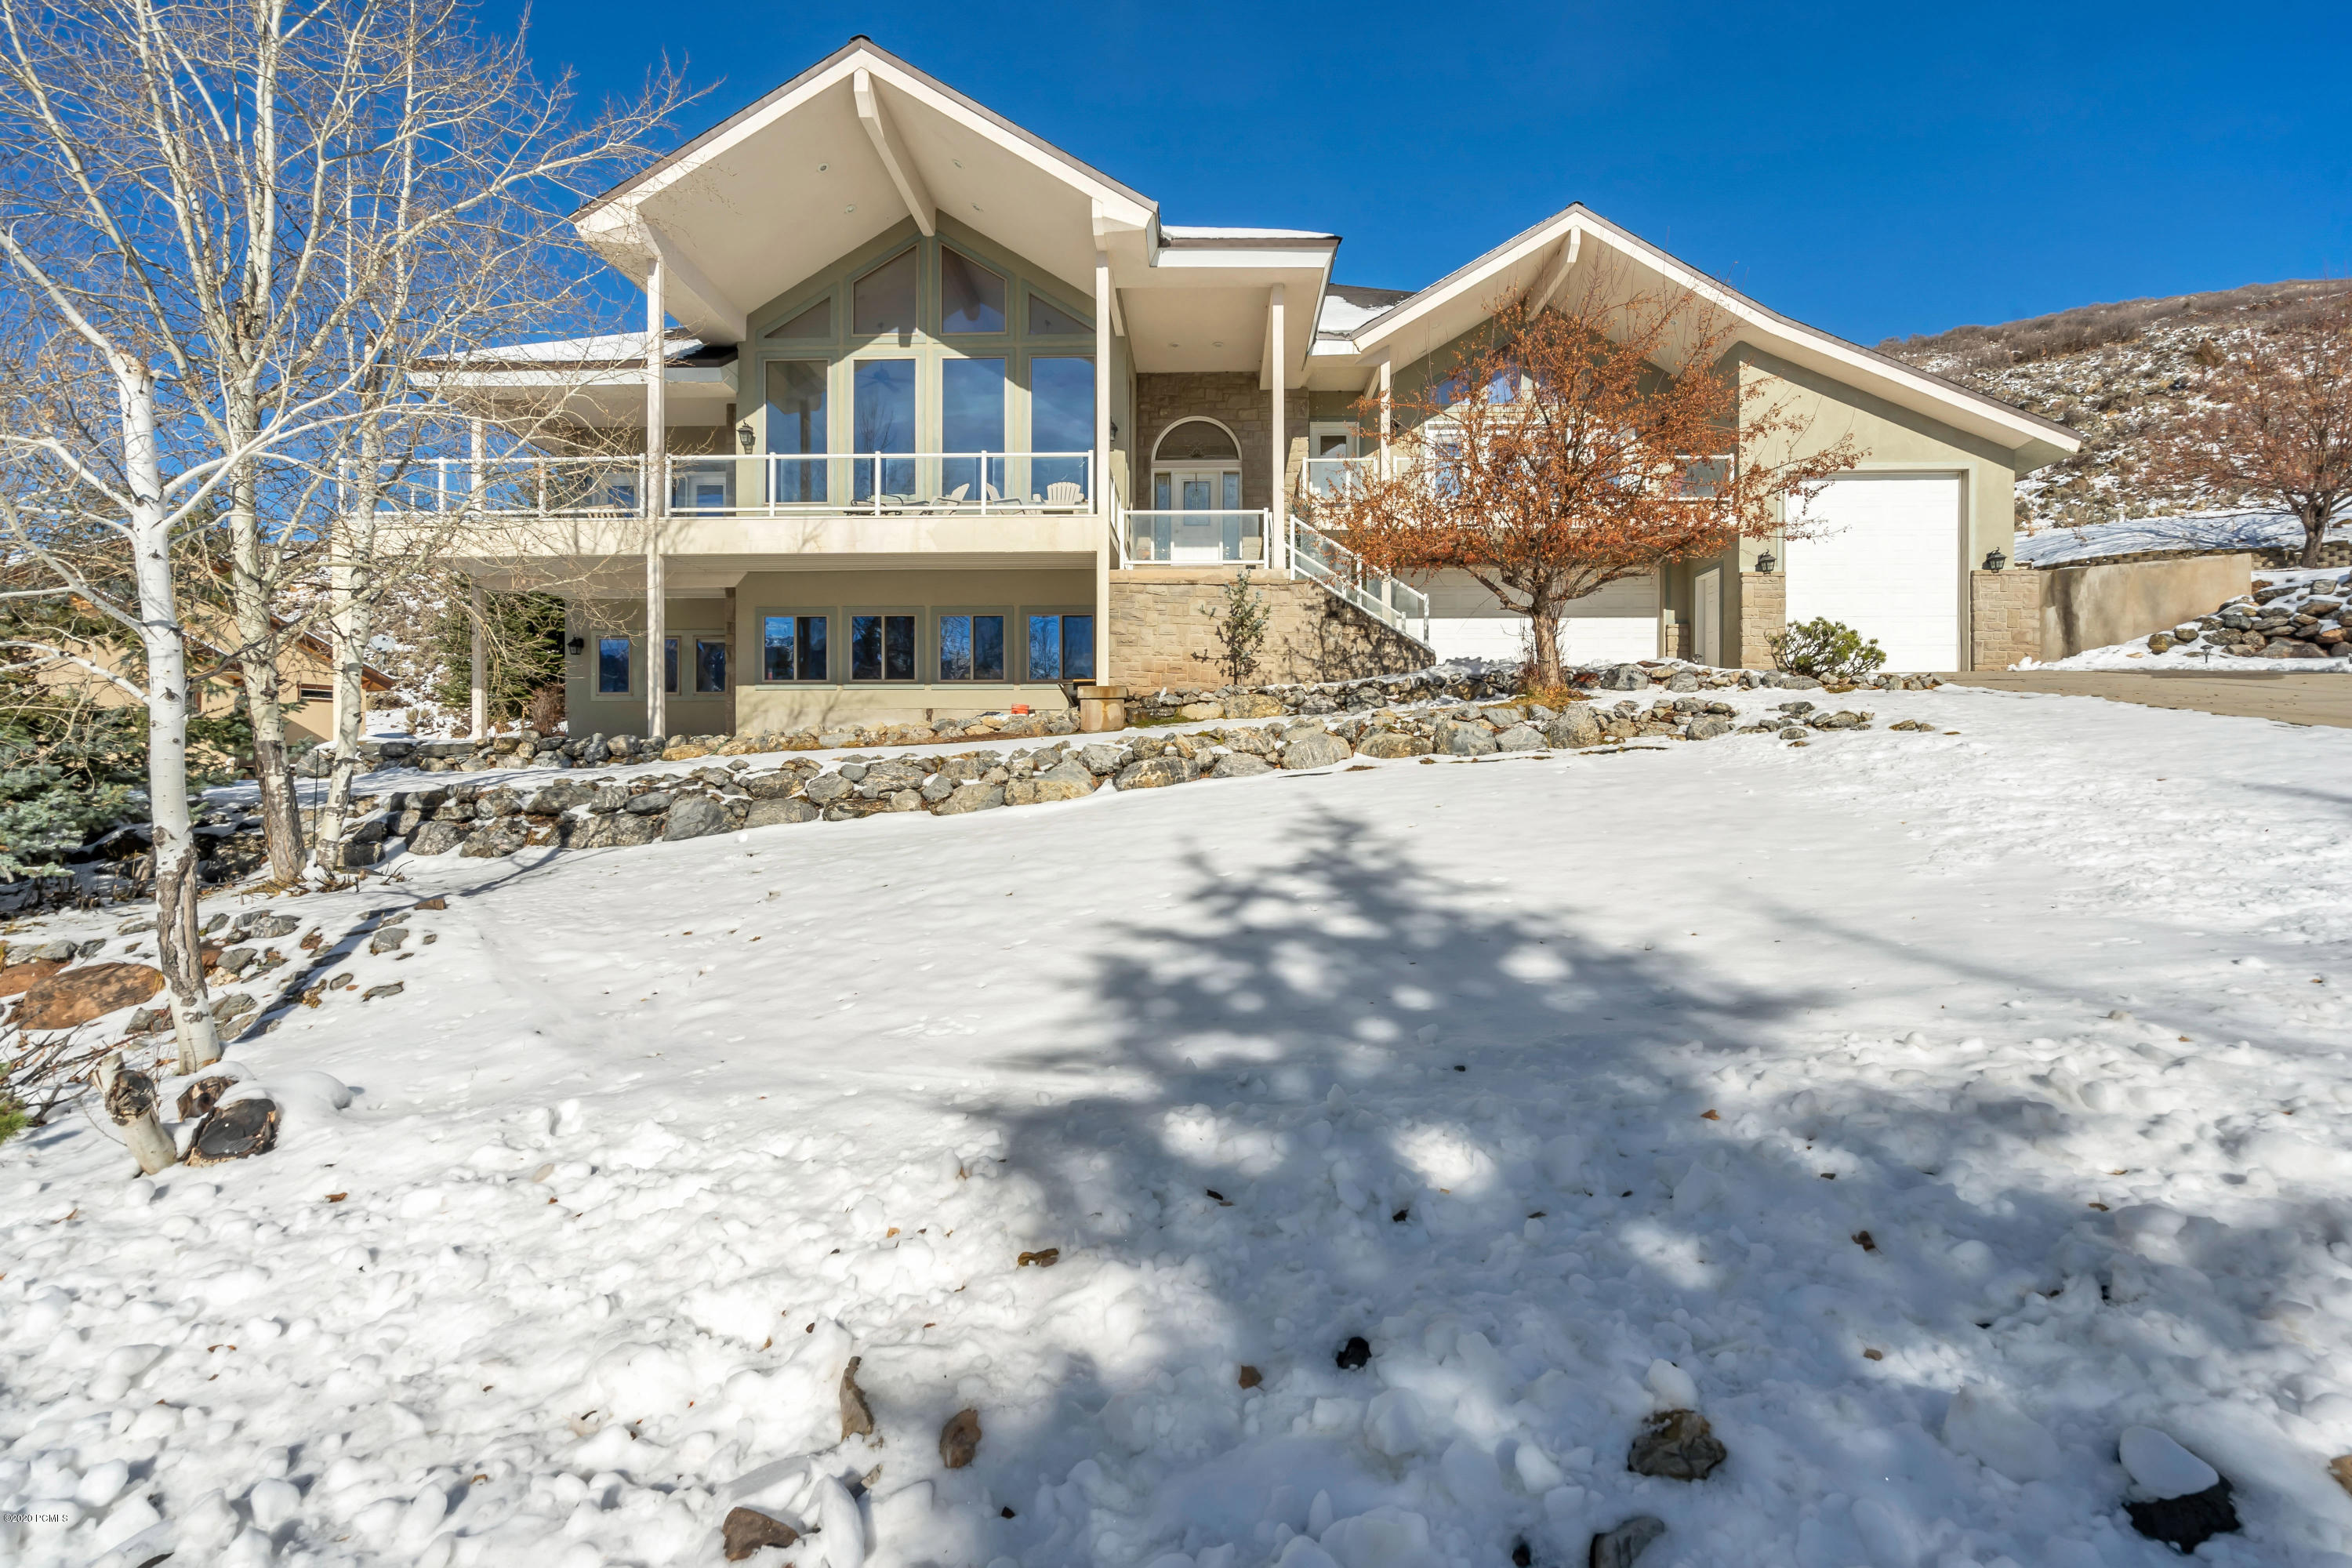 3336 Daybreaker Drive, Park City, Utah 84098, 5 Bedrooms Bedrooms, ,5 BathroomsBathrooms,Single Family,For Sale,Daybreaker,12004462